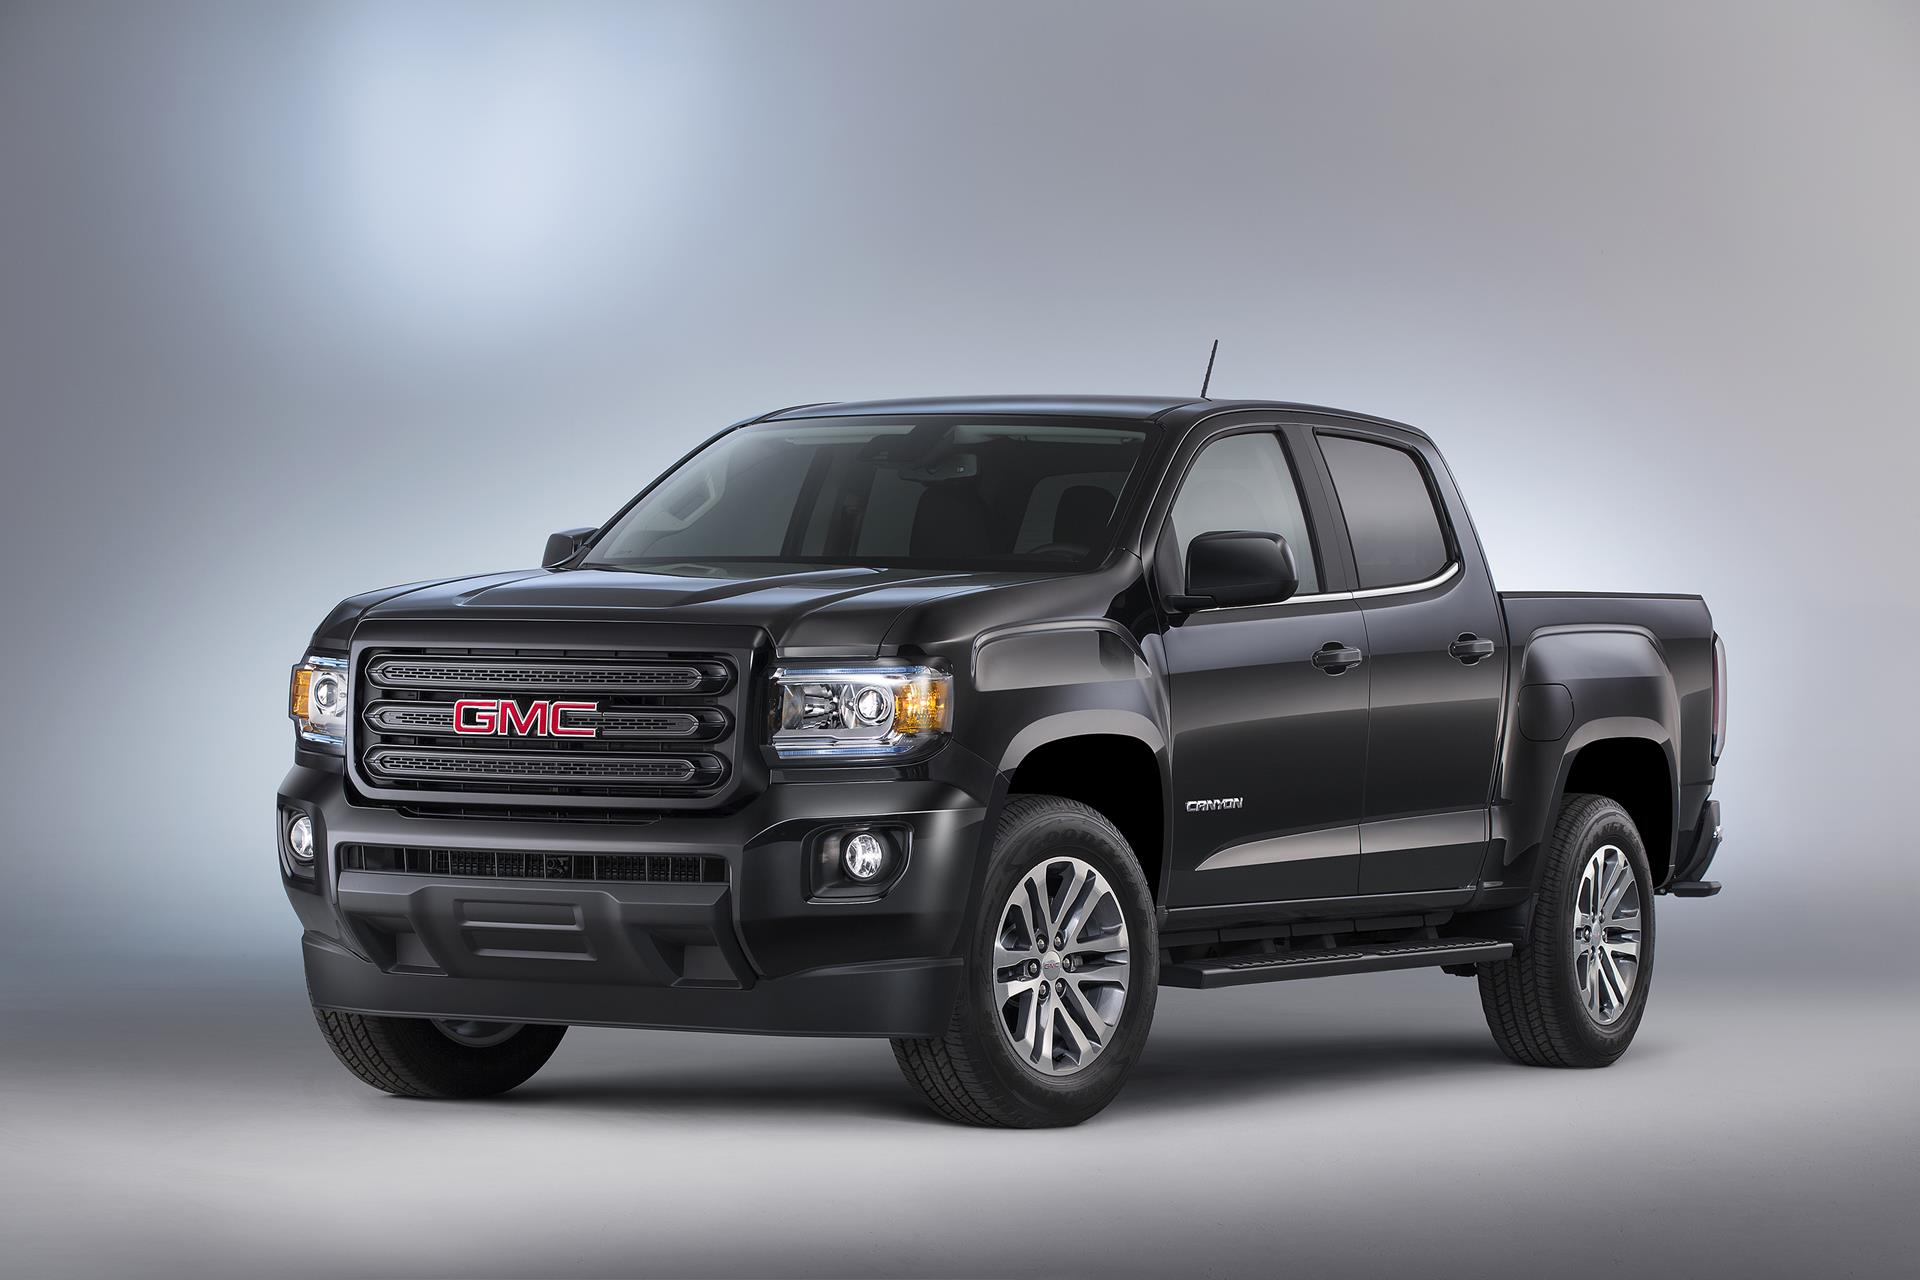 2016 gmc canyon technical specifications and data engine. Black Bedroom Furniture Sets. Home Design Ideas